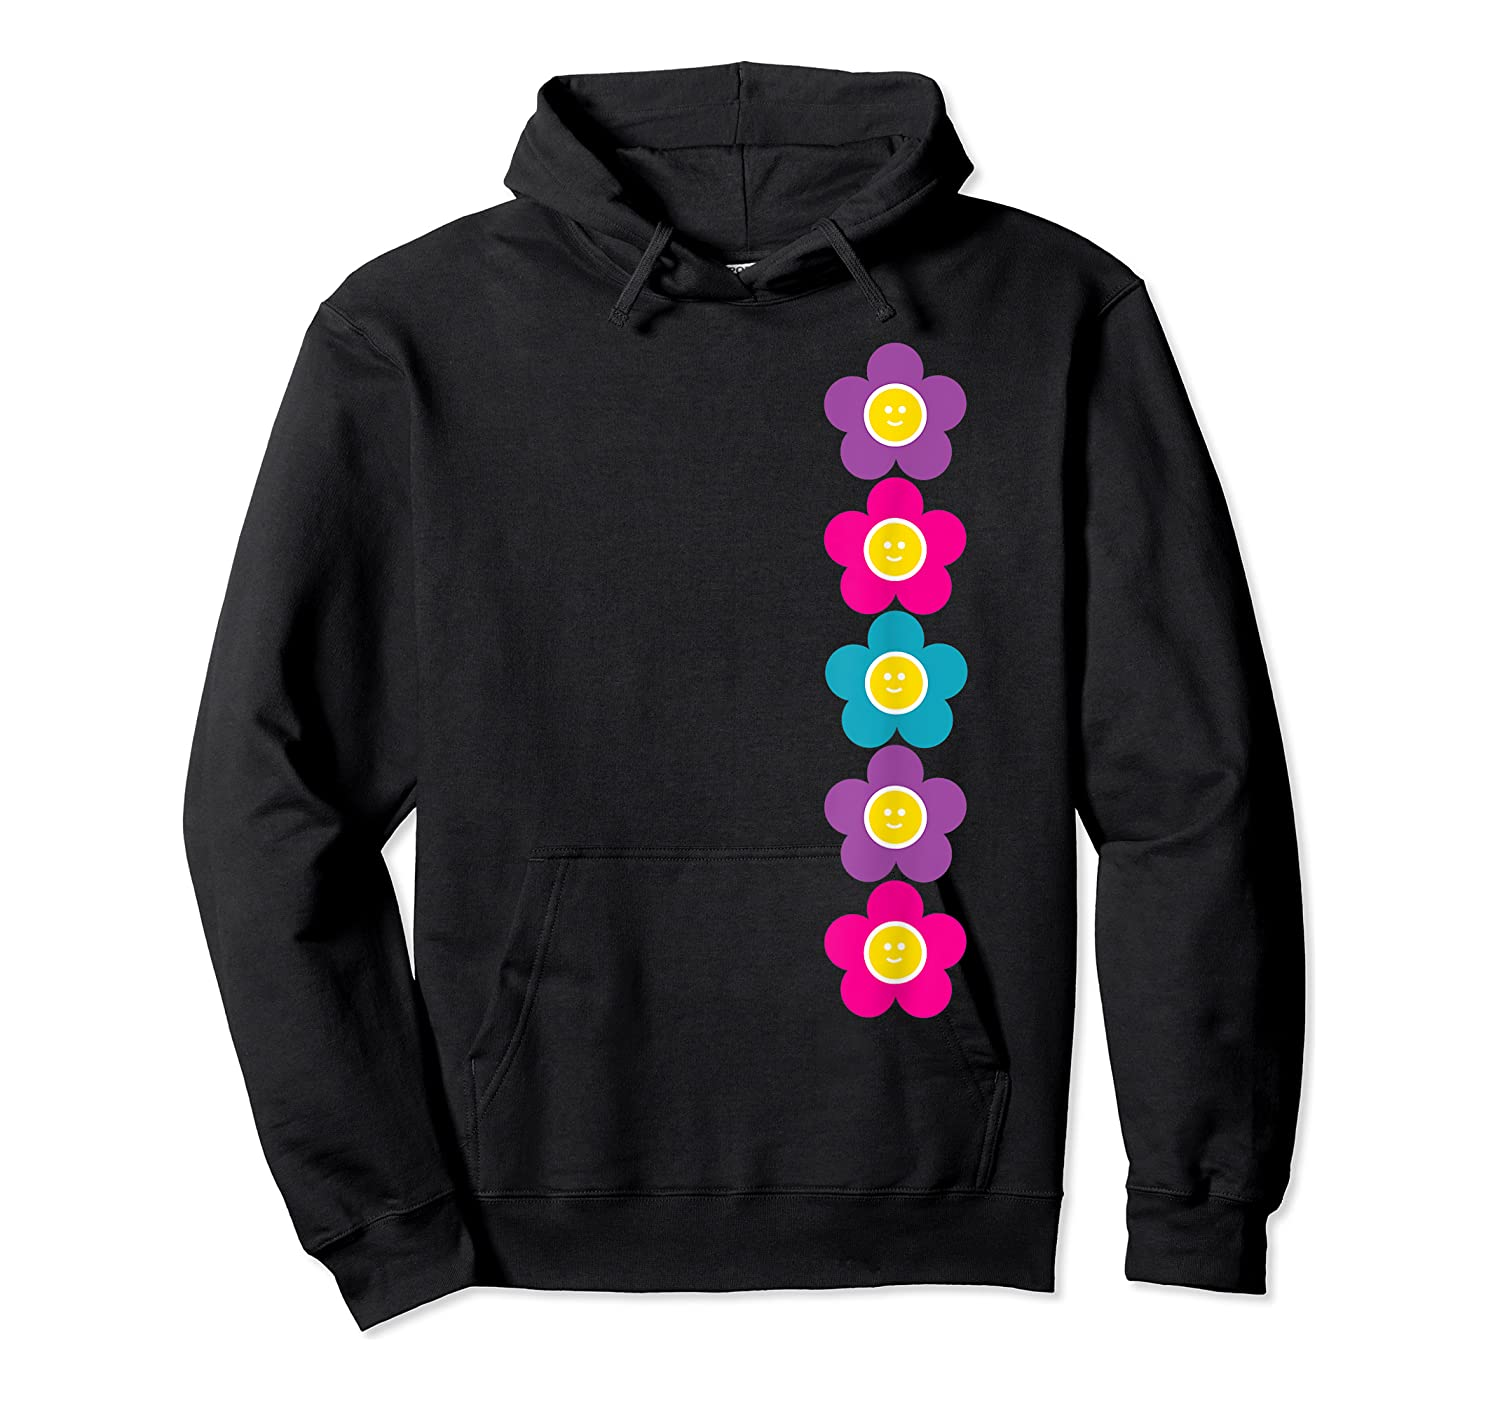 Daisy Flower Pattern Happy, Fun, Bright And Colorful Shirts Unisex Pullover Hoodie